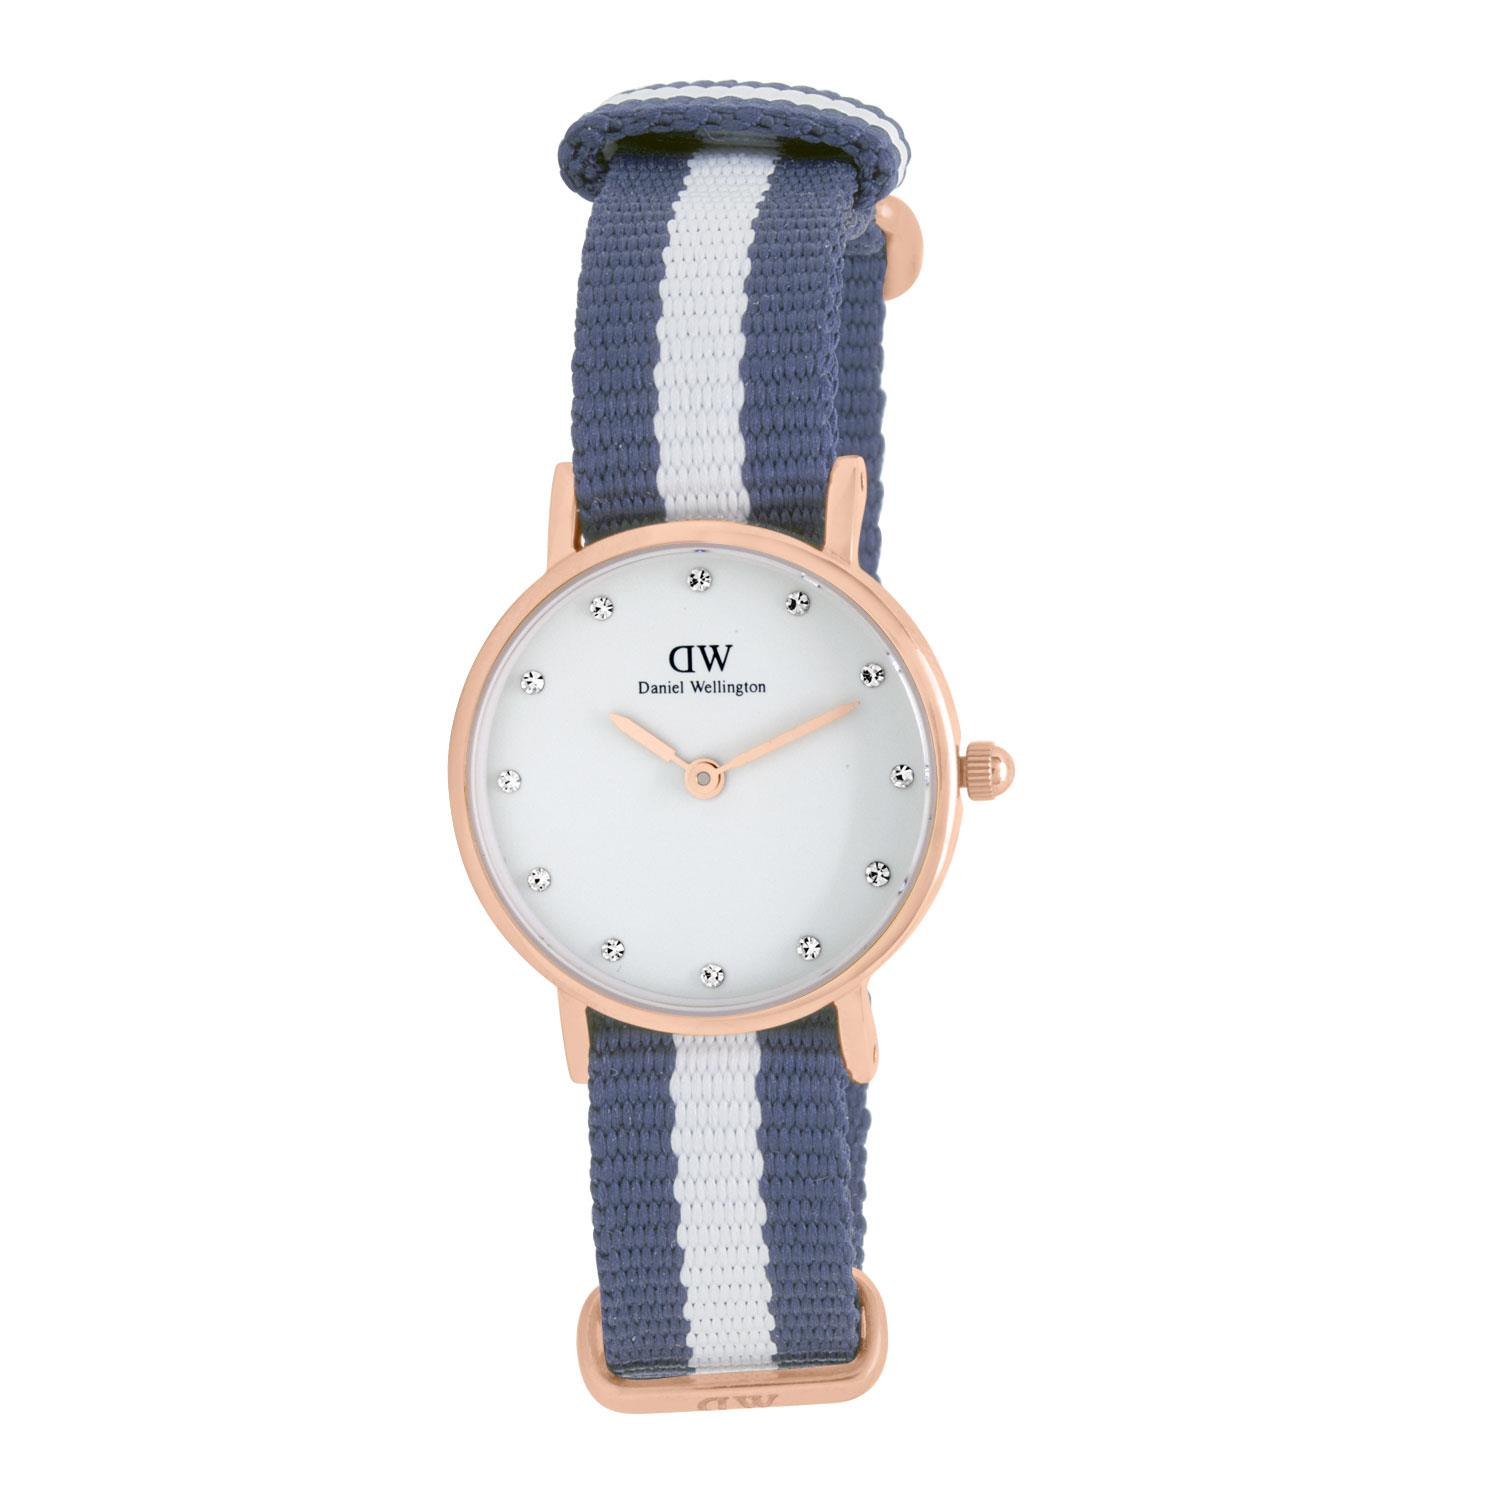 Orologio donna con cassa 26 mm - DANIEL WELLINGTON